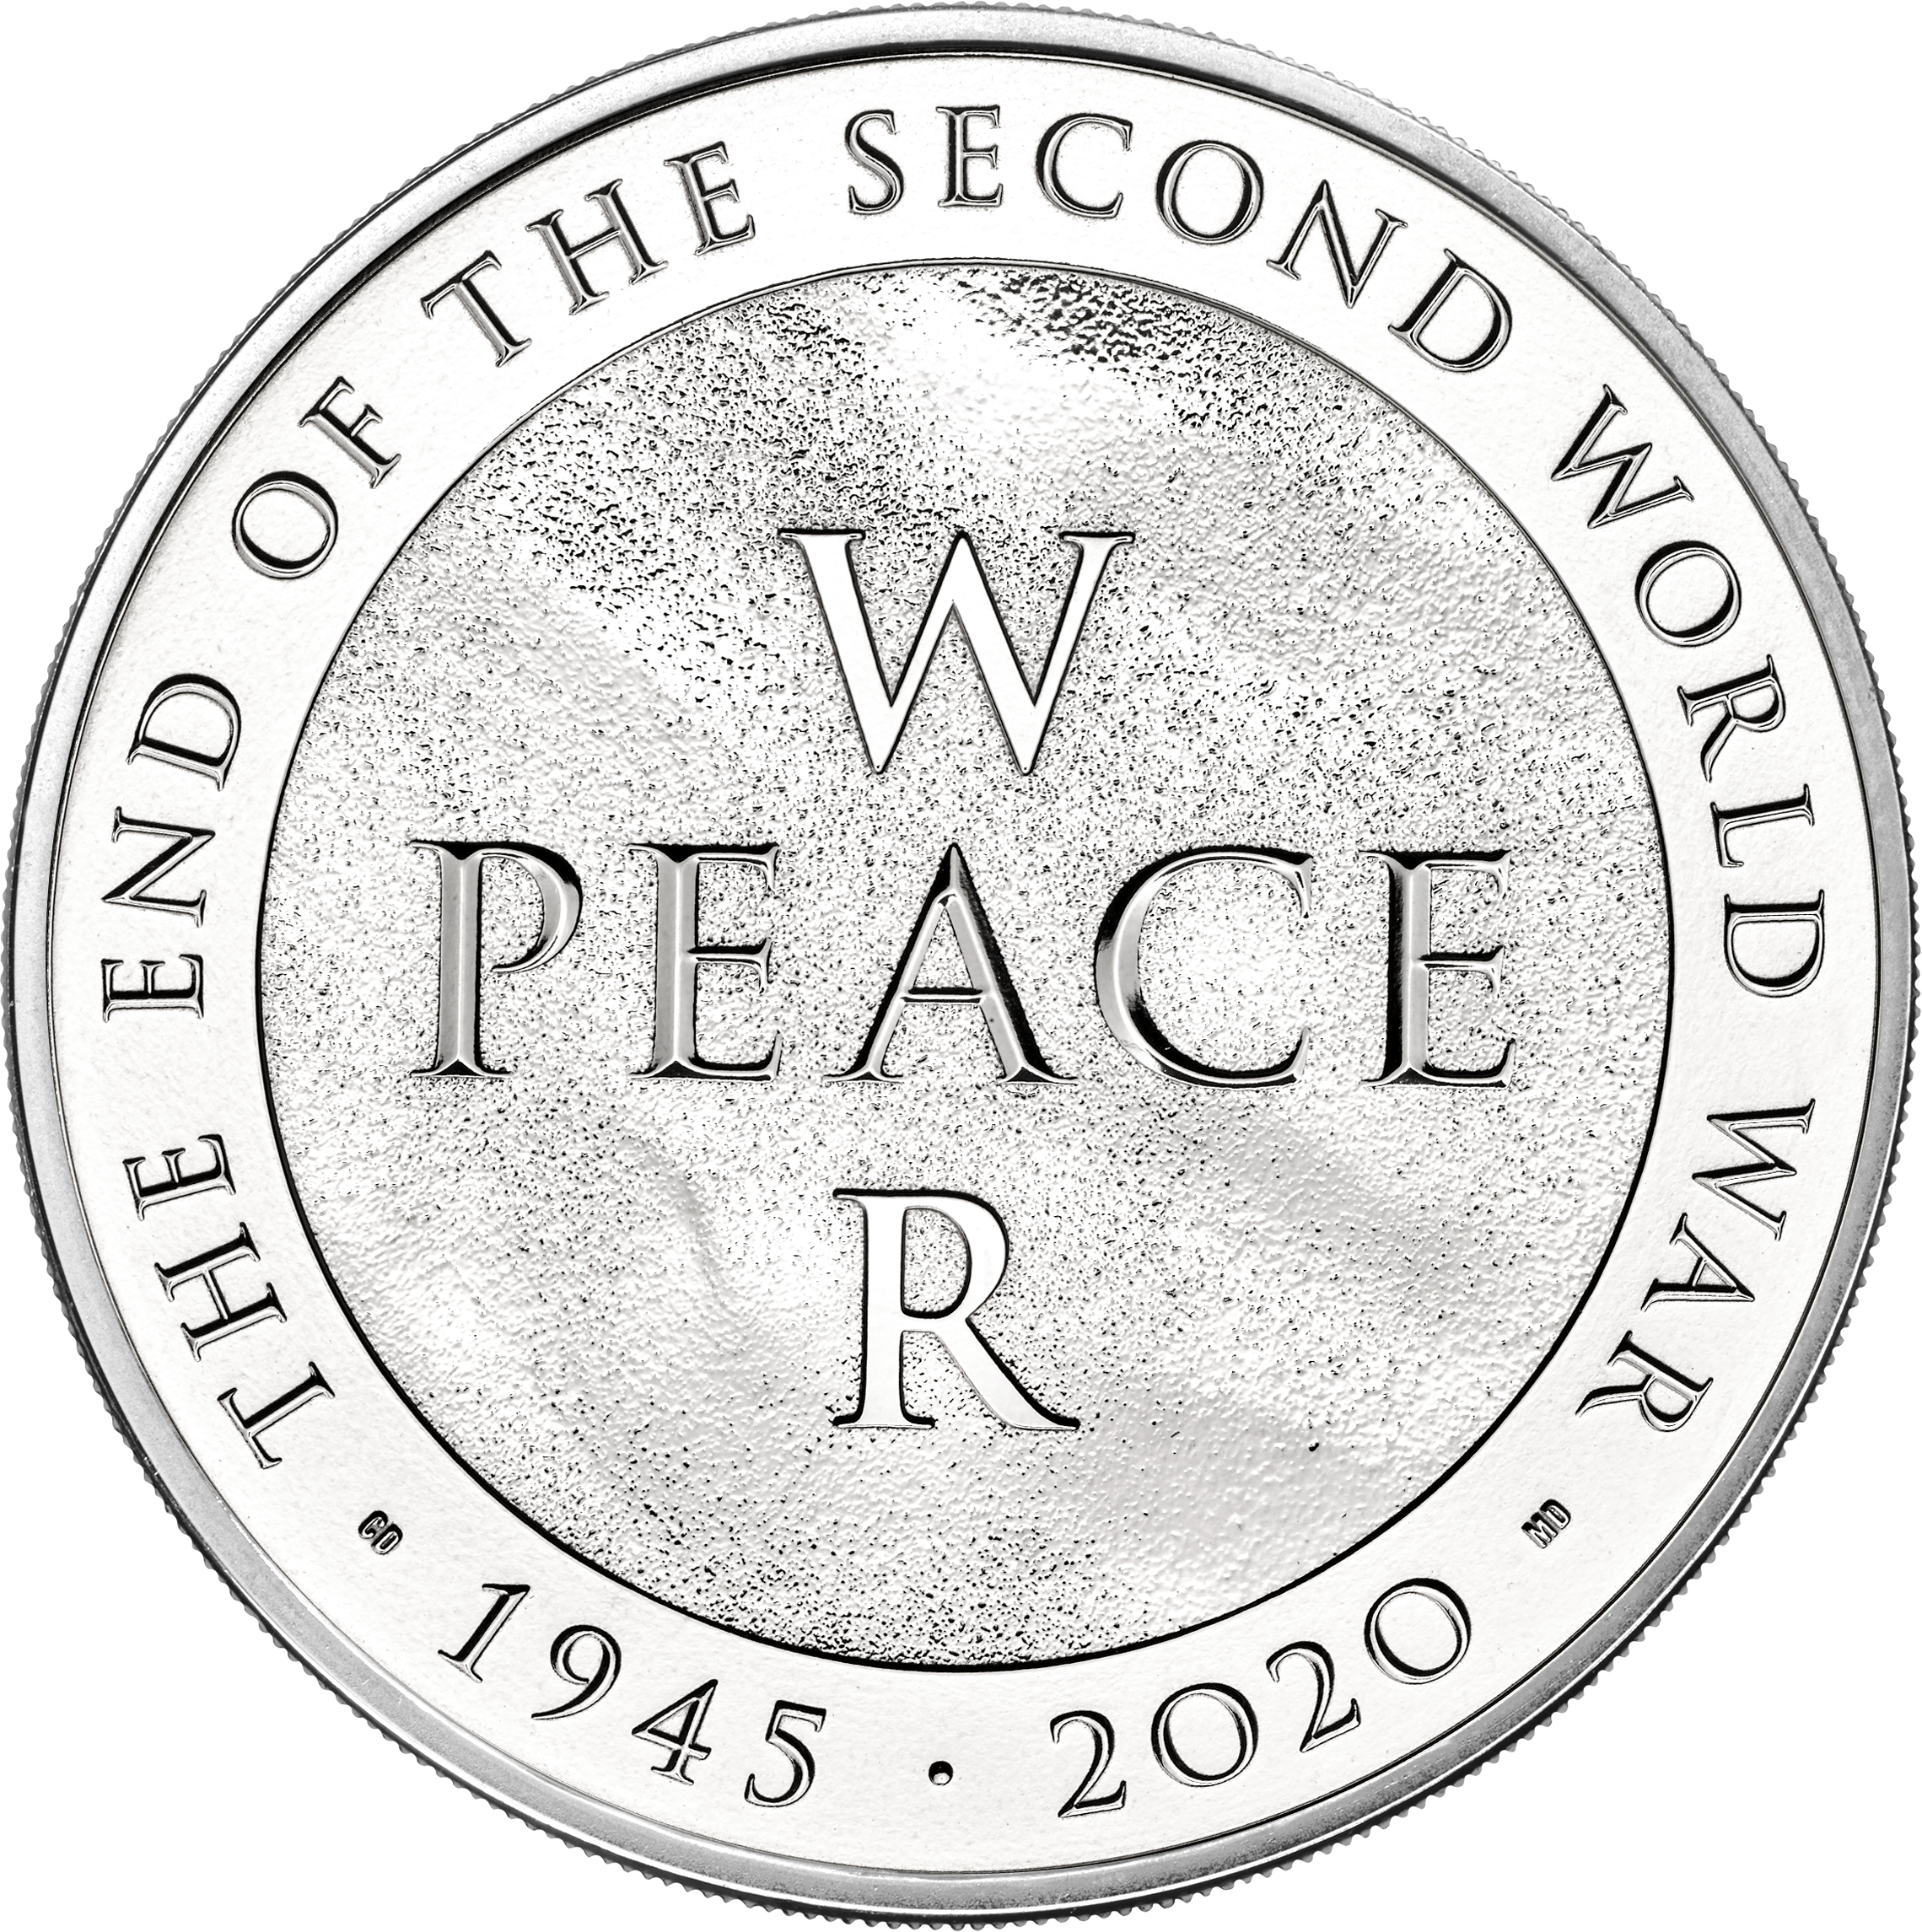 New coin to mark the 75th anniversary of the end of the Second World War